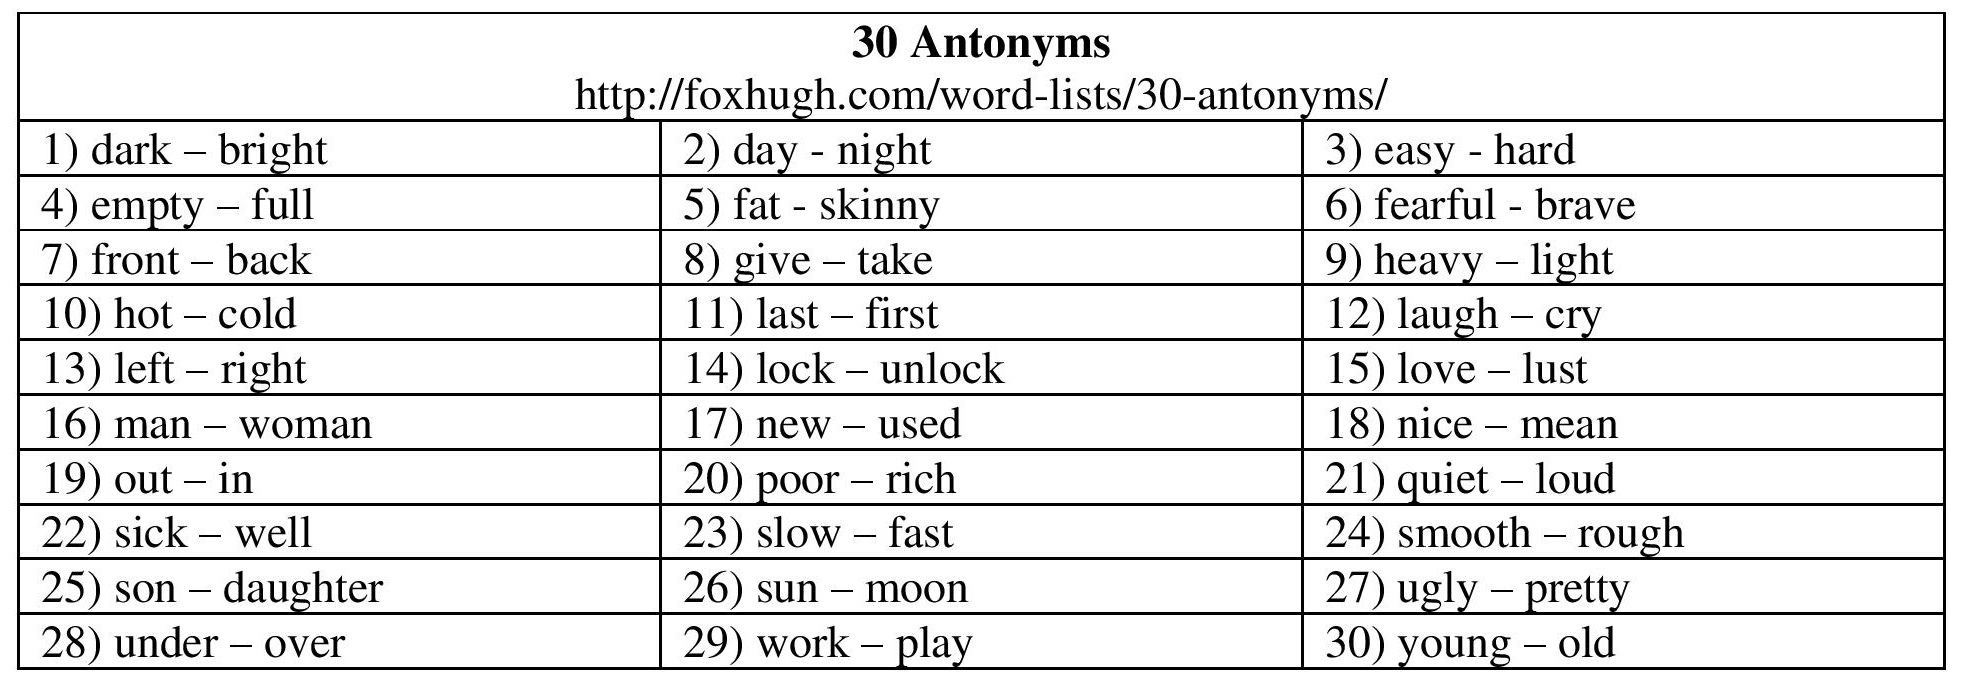 Worksheets Antonym Synonym List 30 antonyms hugh fox iii antonyms